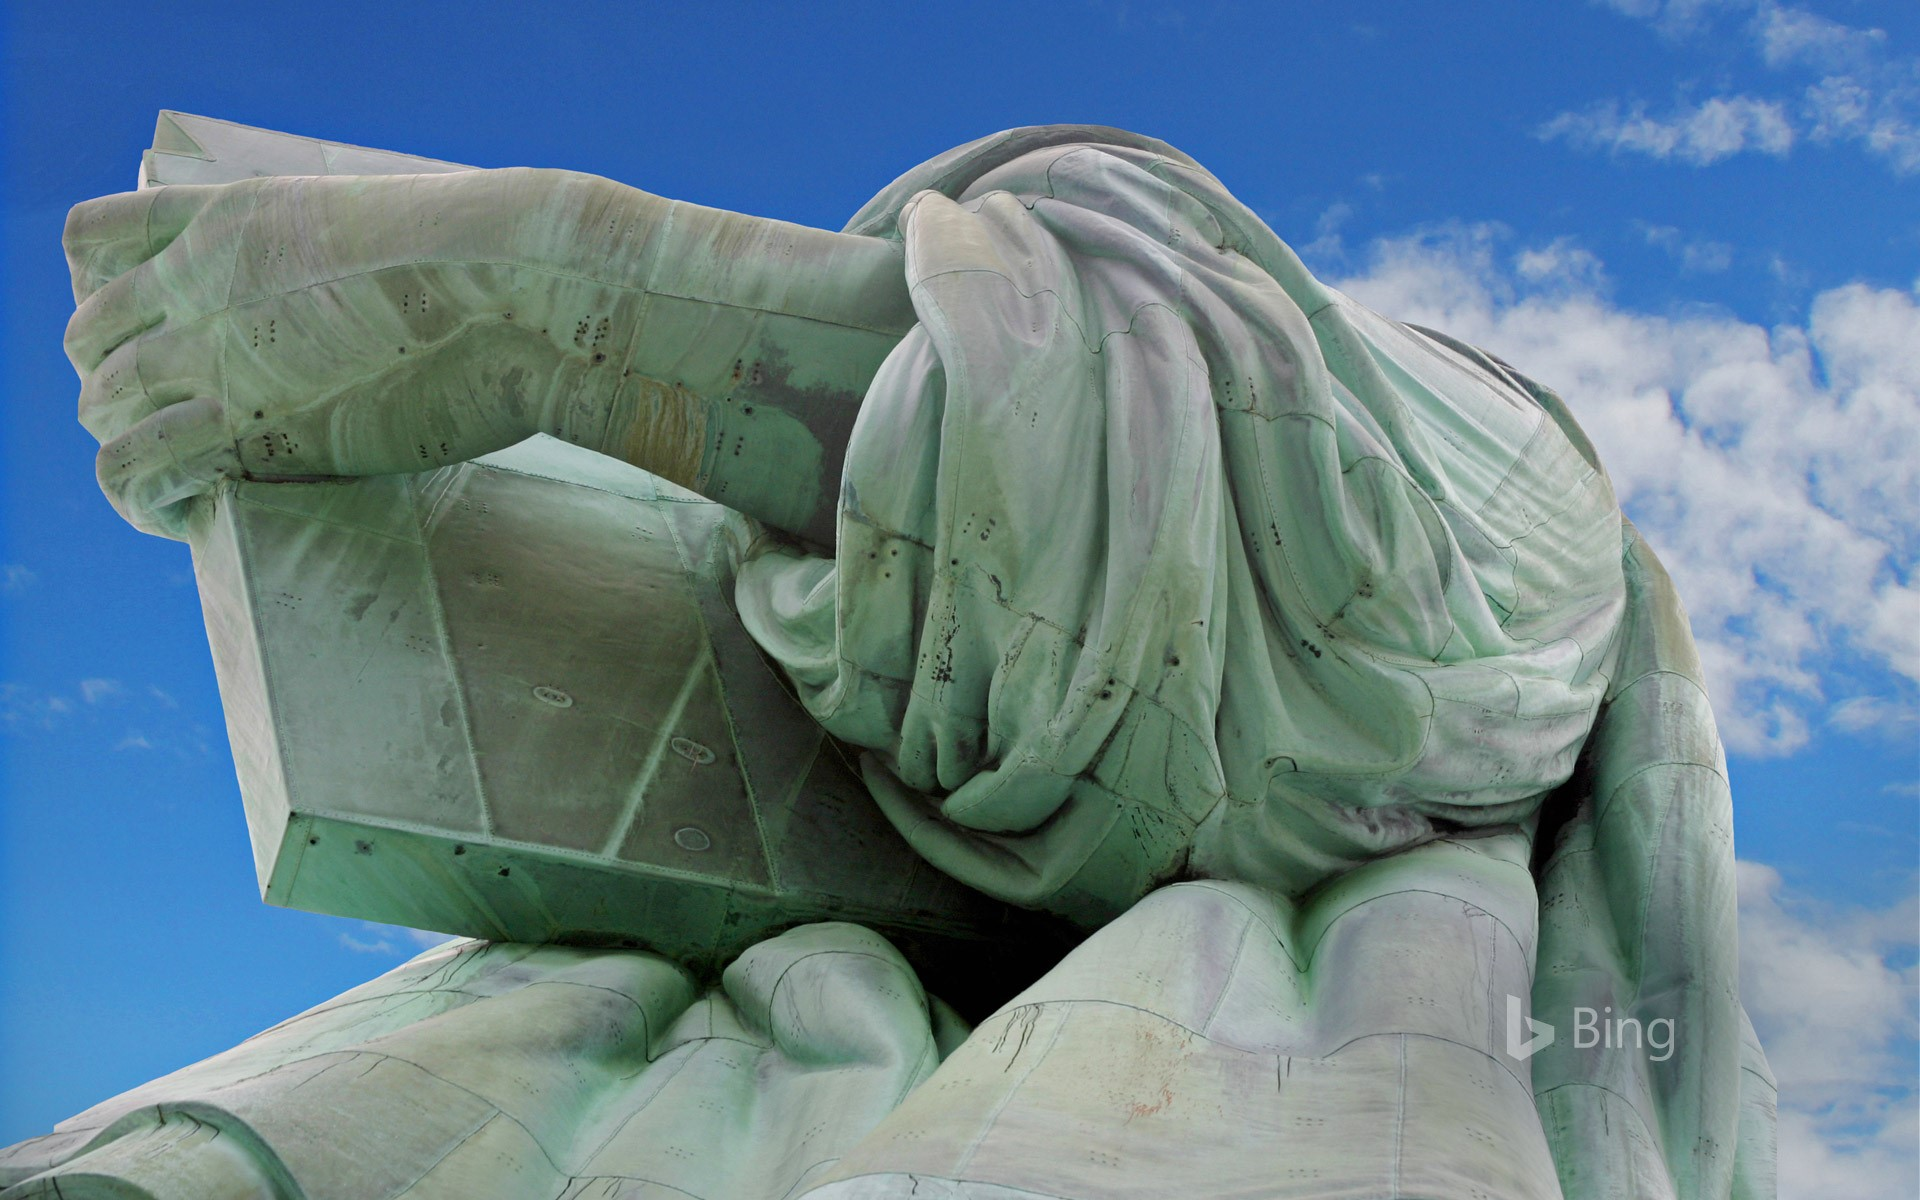 Detail of the Statue of Liberty, on Liberty Island, New York